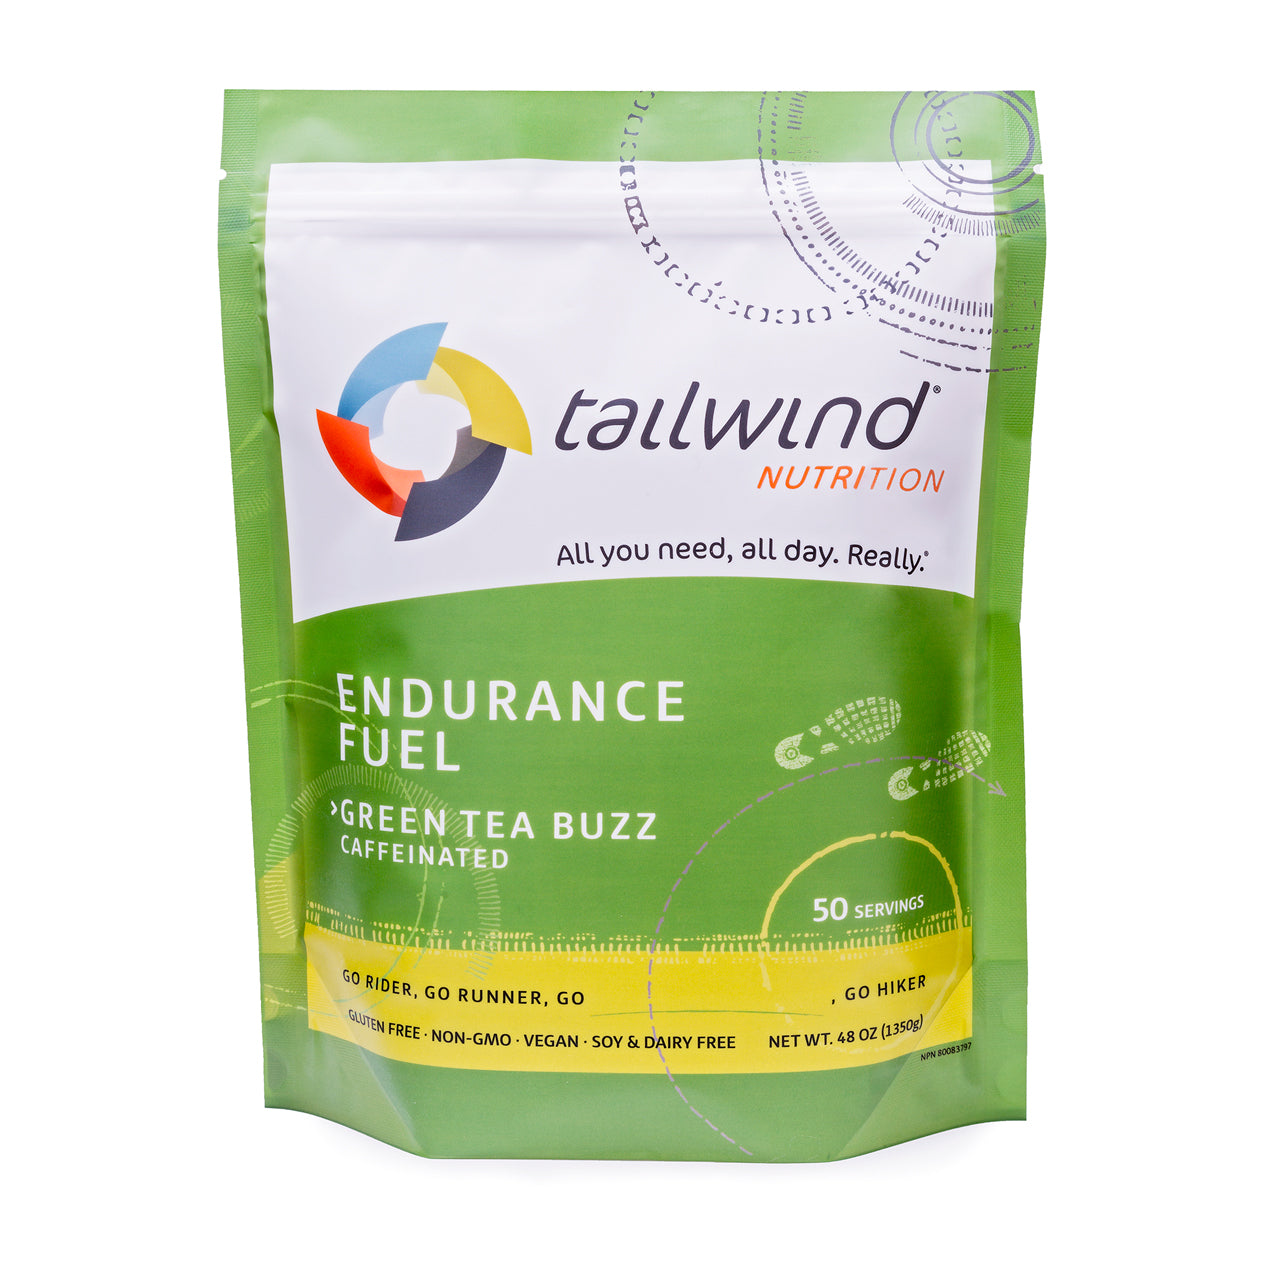 Tailwind Nutrition Endurance Fuel: 50 Serving Pack